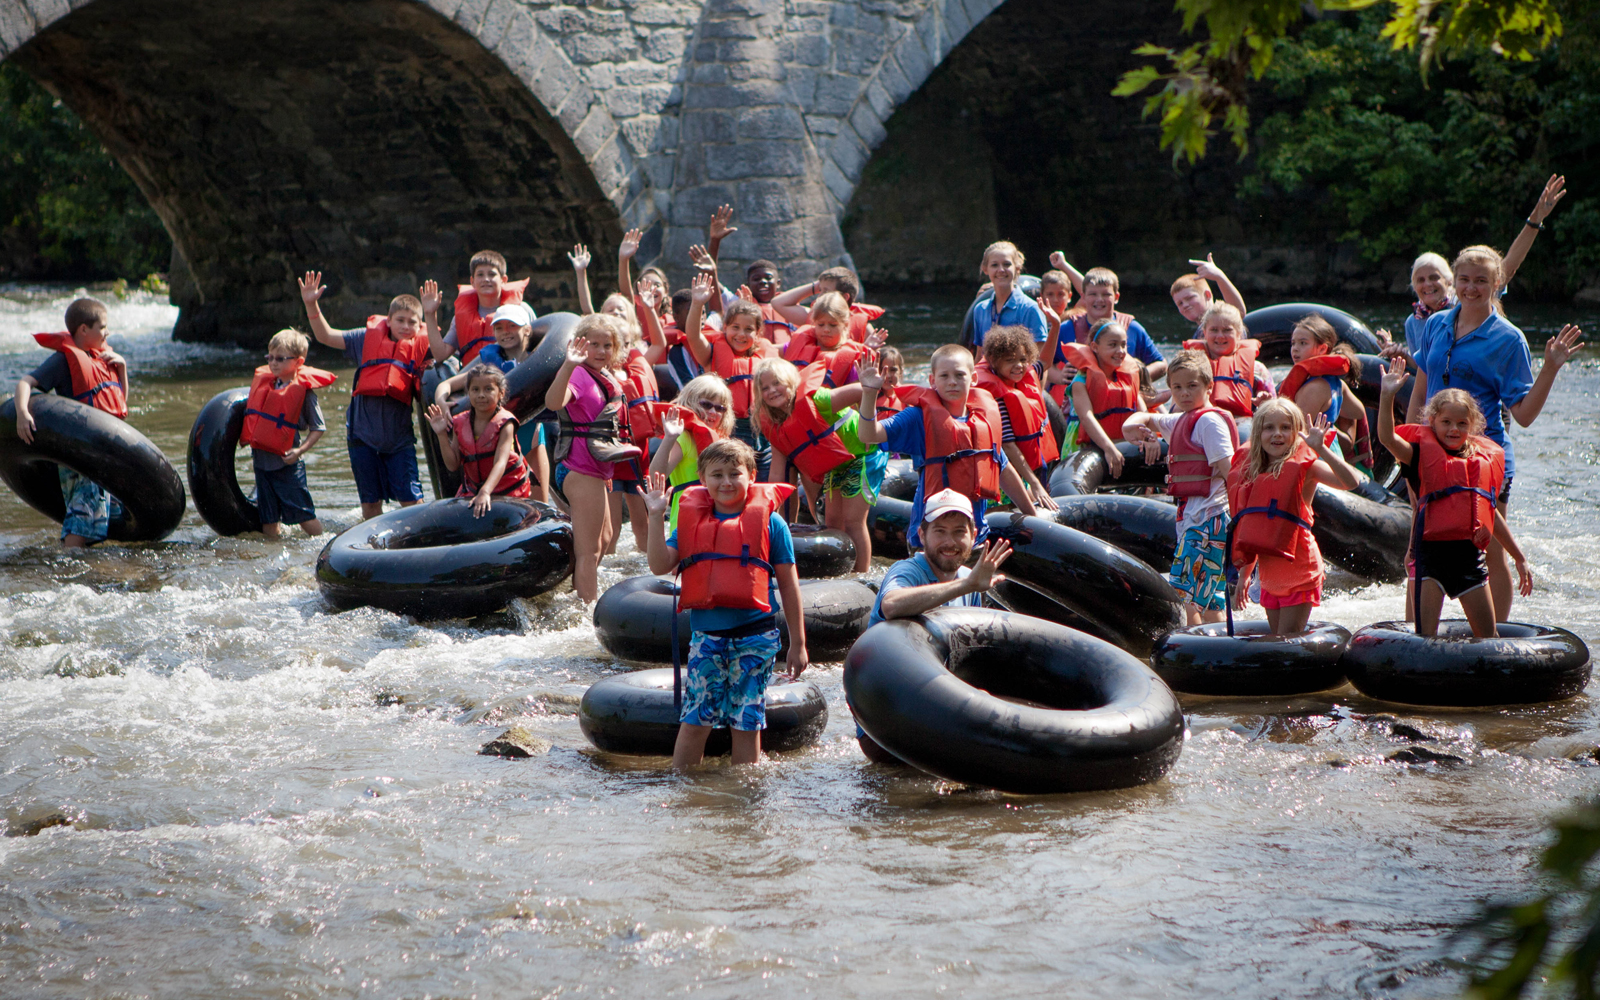 Tubing and water fun at the Antietam Creek